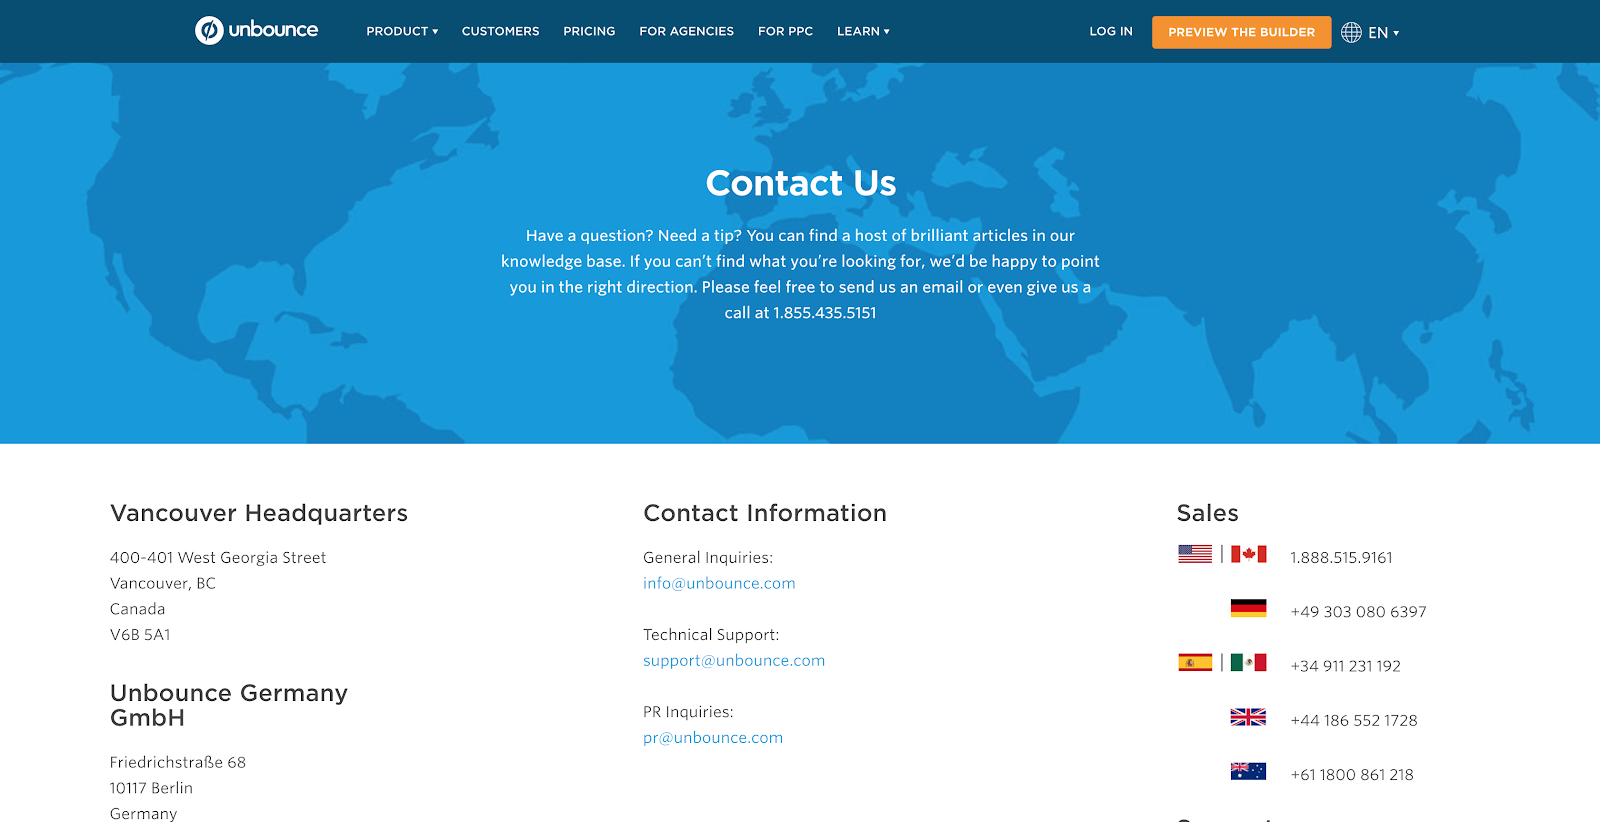 25 best contact us page examples to inspire yours Personal Links Page unbounce contact us